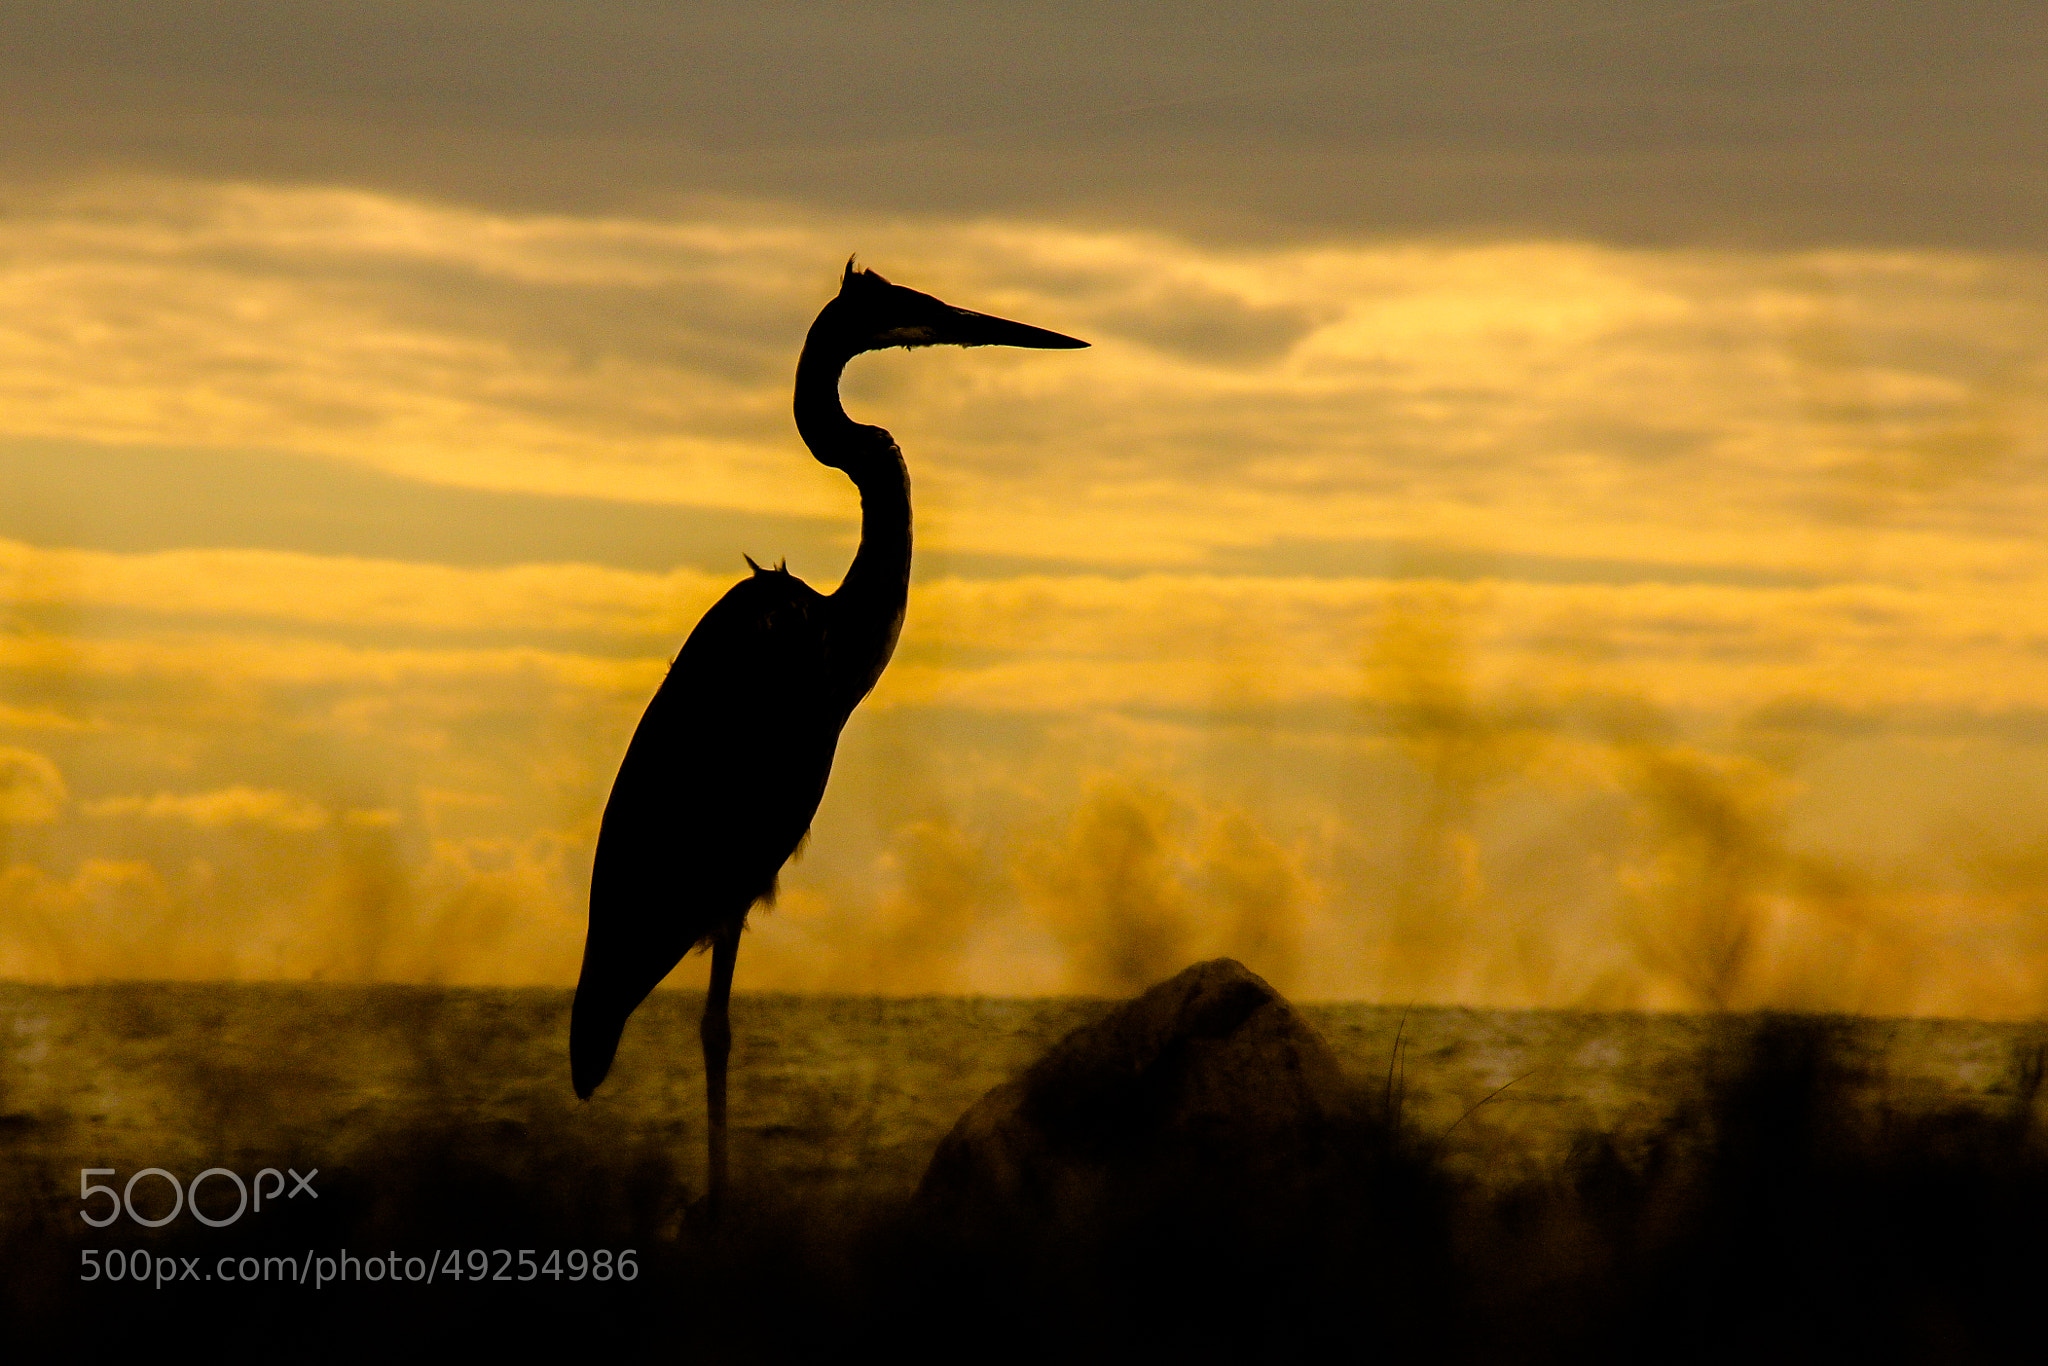 Photograph Heron Silhouette by Andy Operchuck on 500px